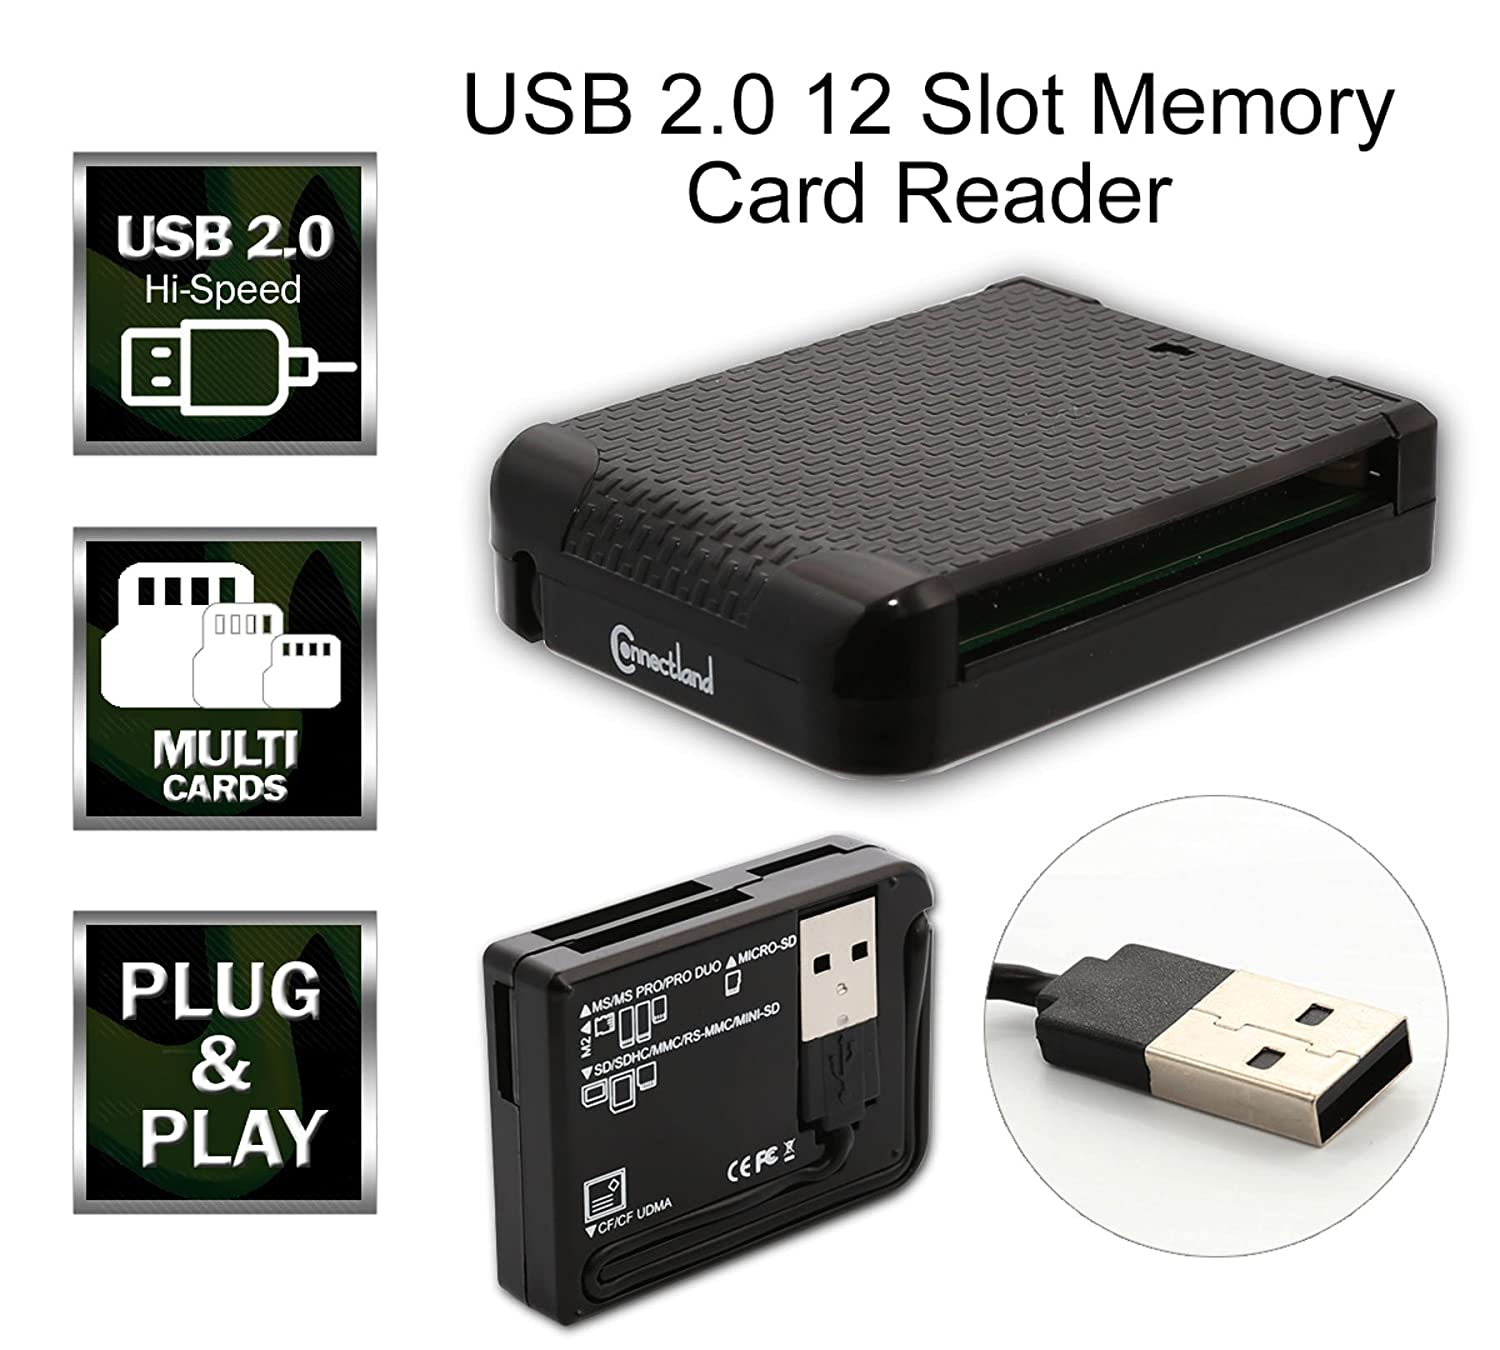 CONNECTLAND USB2.0 CARD READER DRIVERS FOR WINDOWS DOWNLOAD